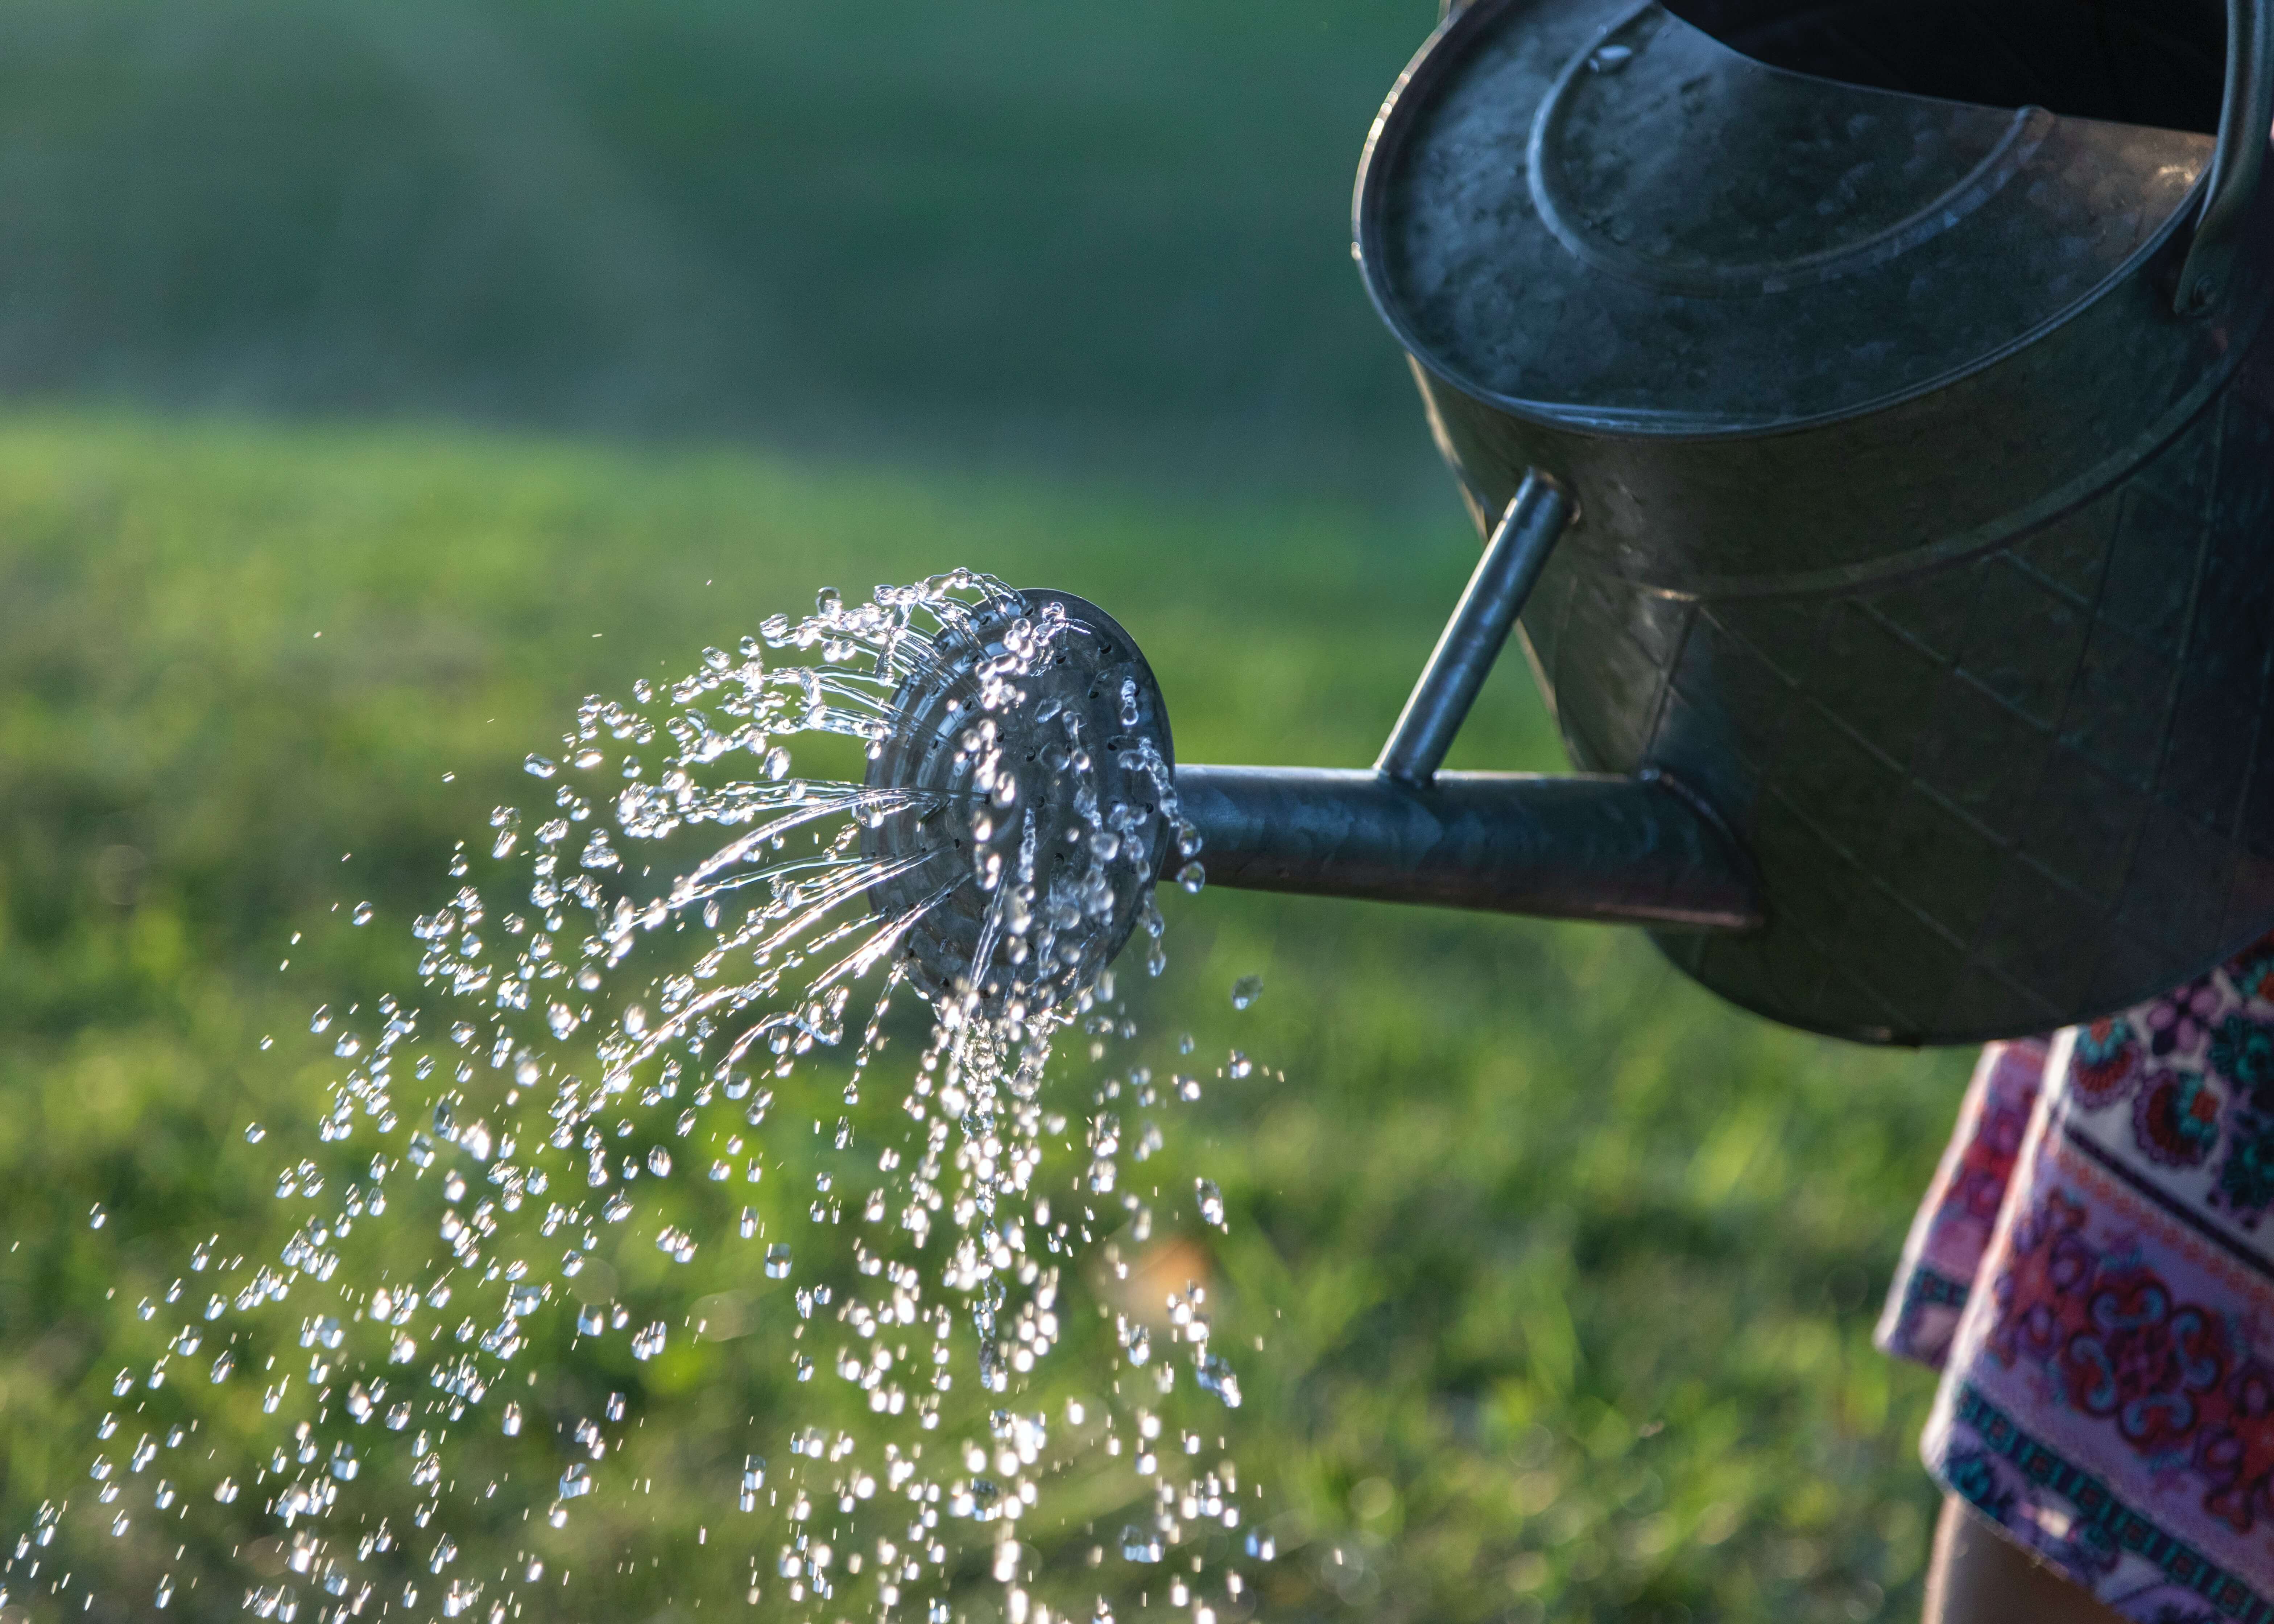 Watering can in action - watering